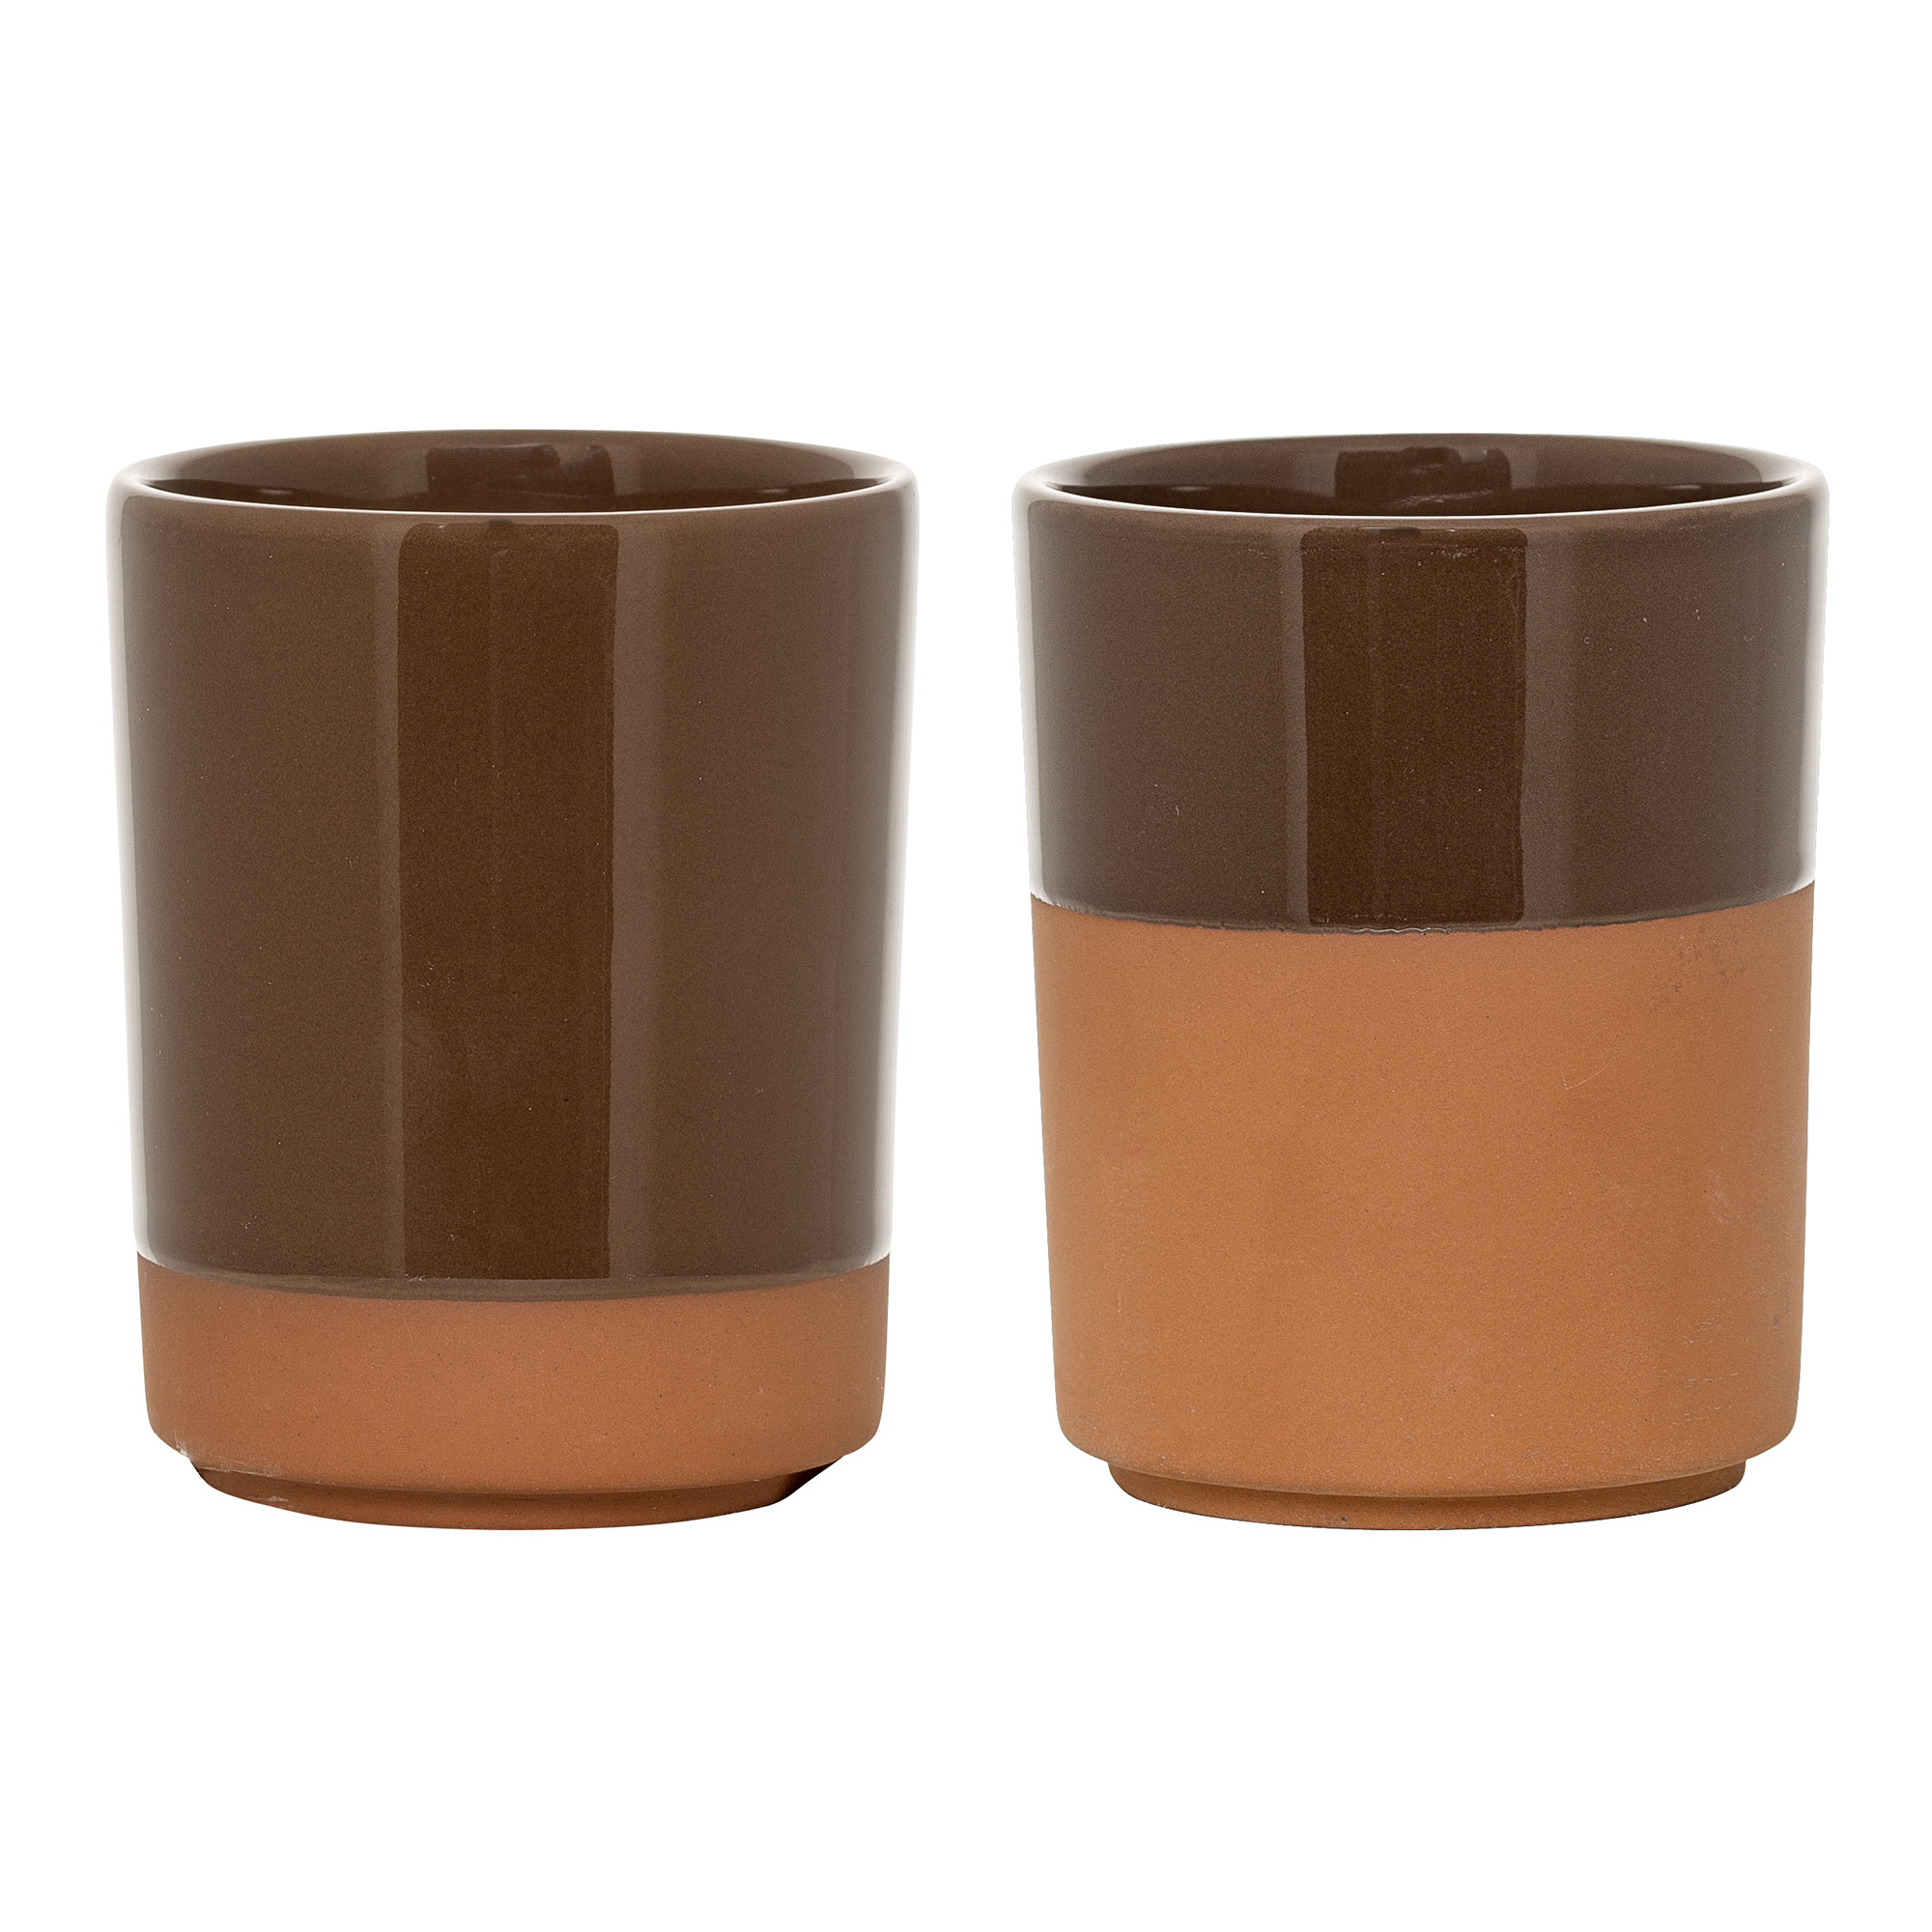 Image of   Cup, terracotta/brown